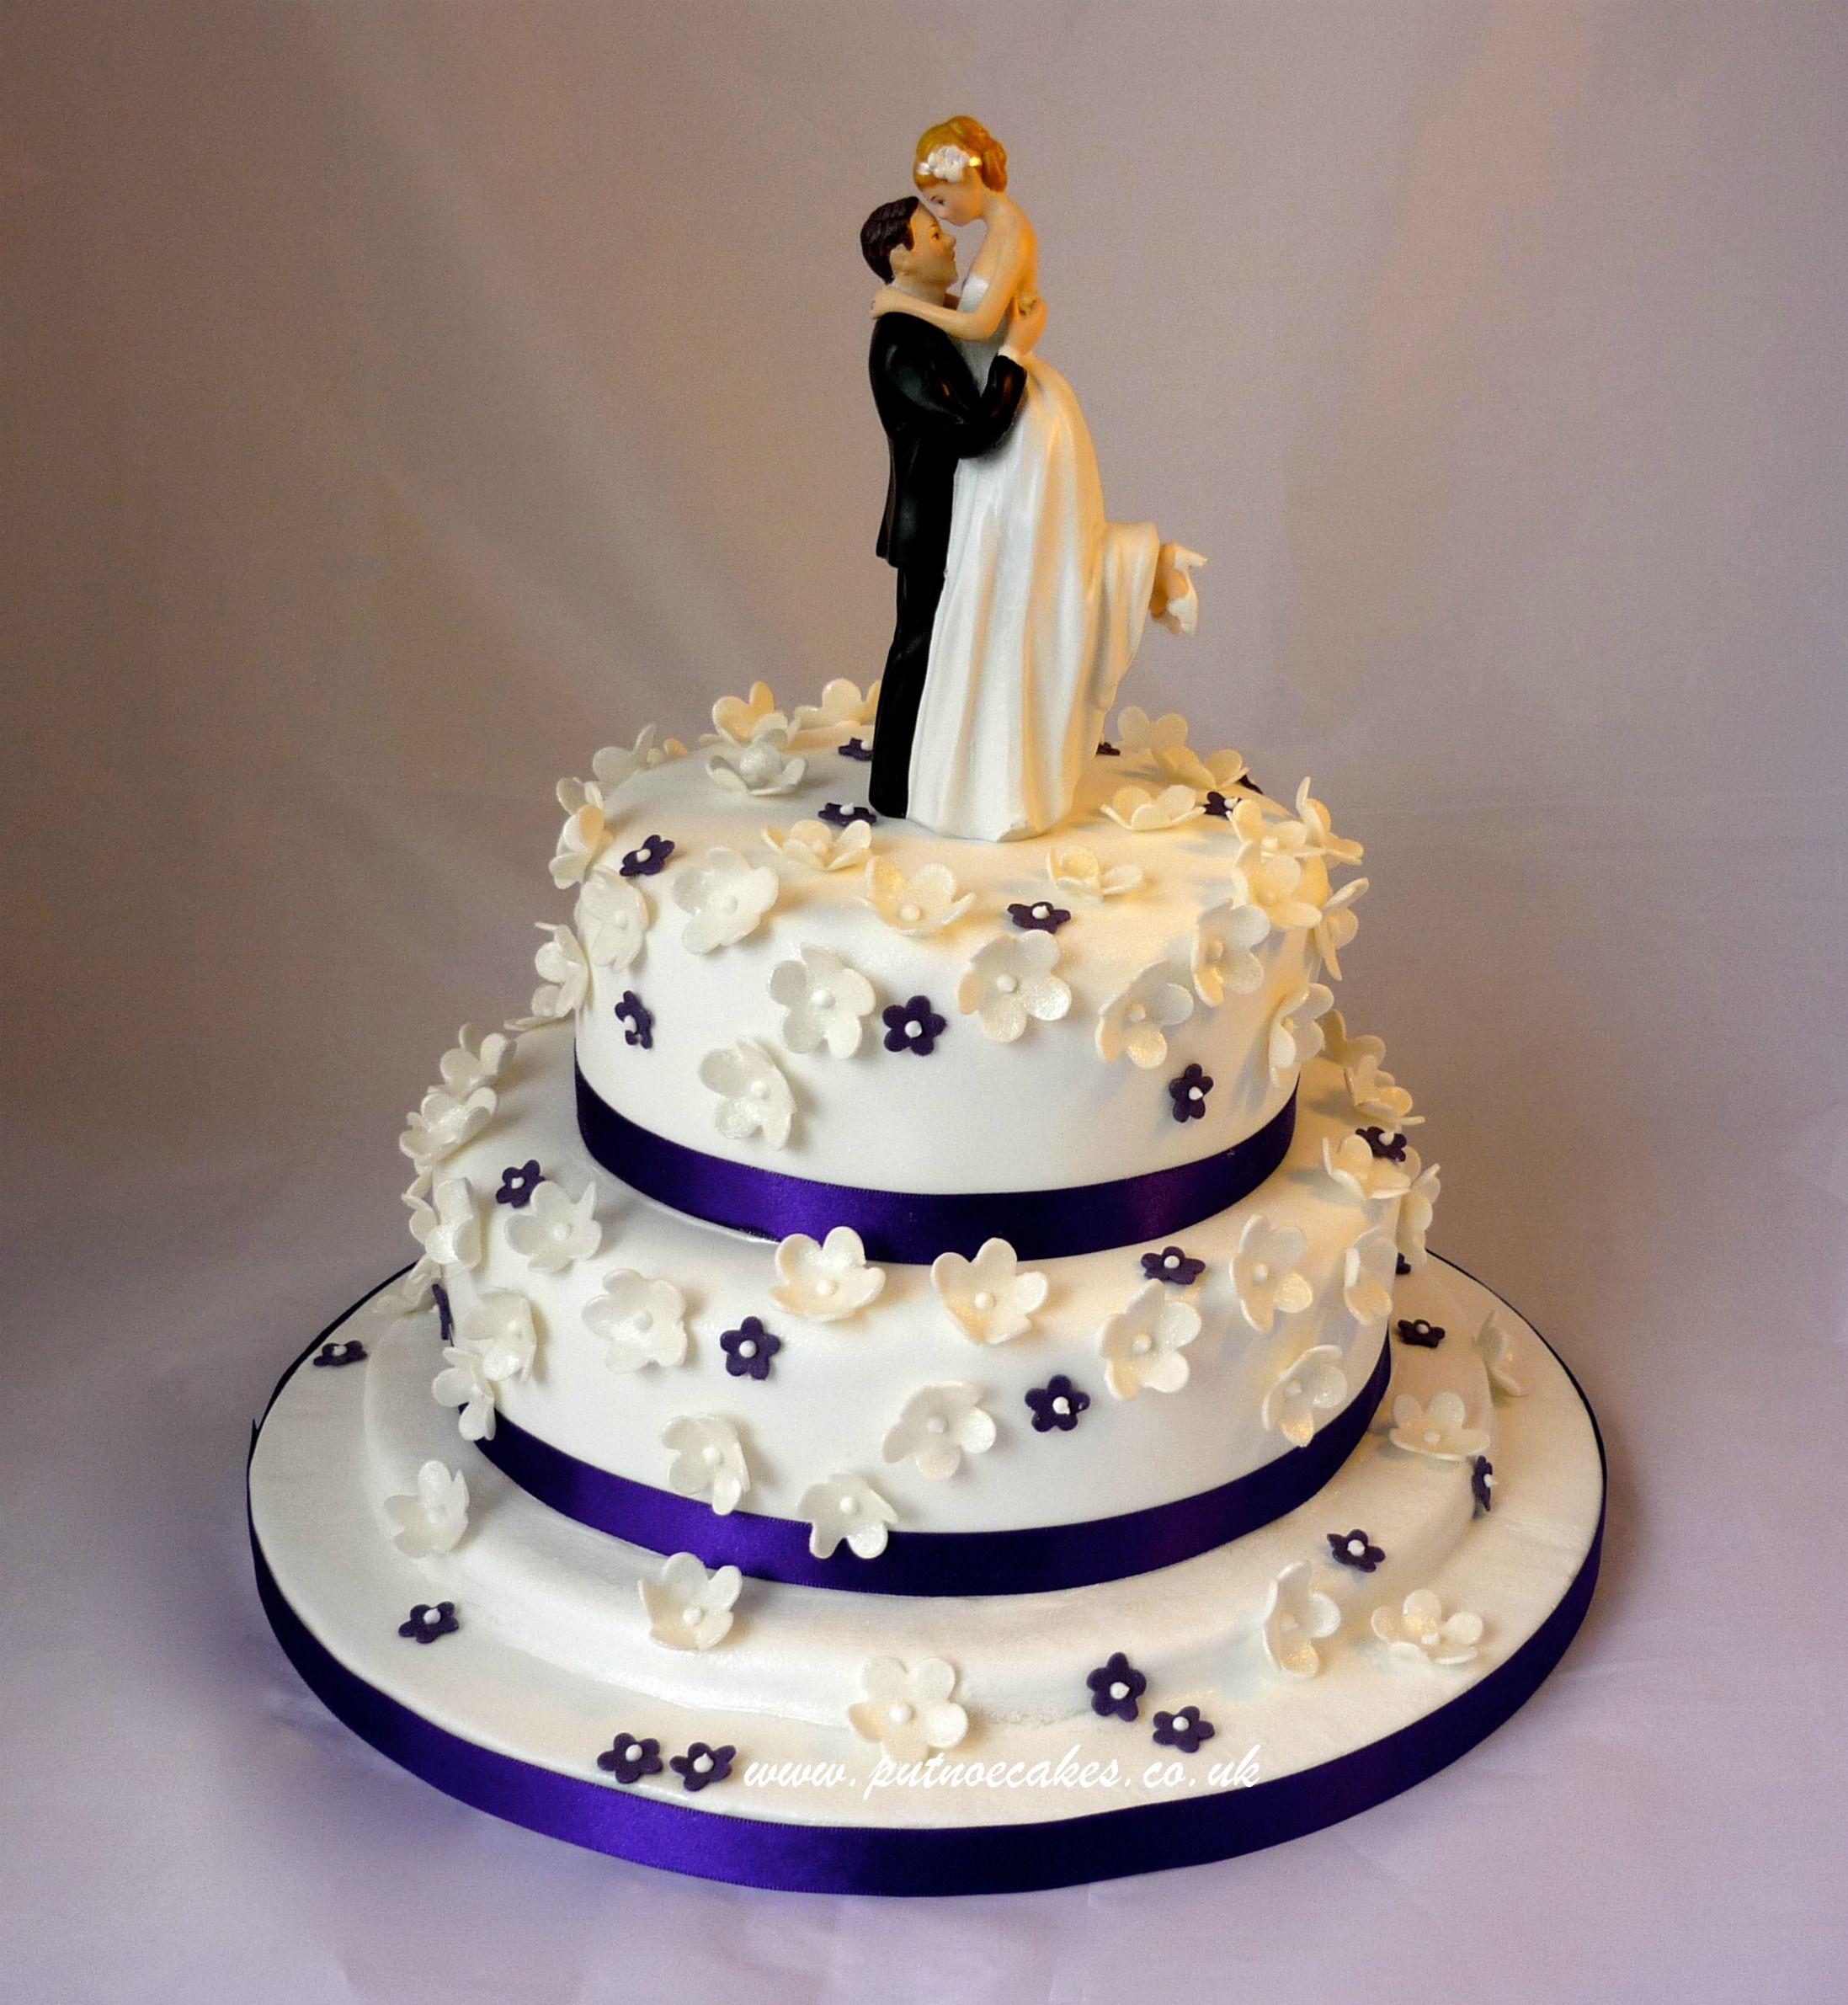 Generous Wedding Cake Stands Big Wedding Cake Images Round My Big Fat Greek Wedding Bundt Cake Giant Wedding Cakes Young Gay Wedding Cake Toppers Brown3 Tier Wedding Cakes Wedding Cake Ideas 2014 | Posted By Neeta On Mar 7, 2014 In ..